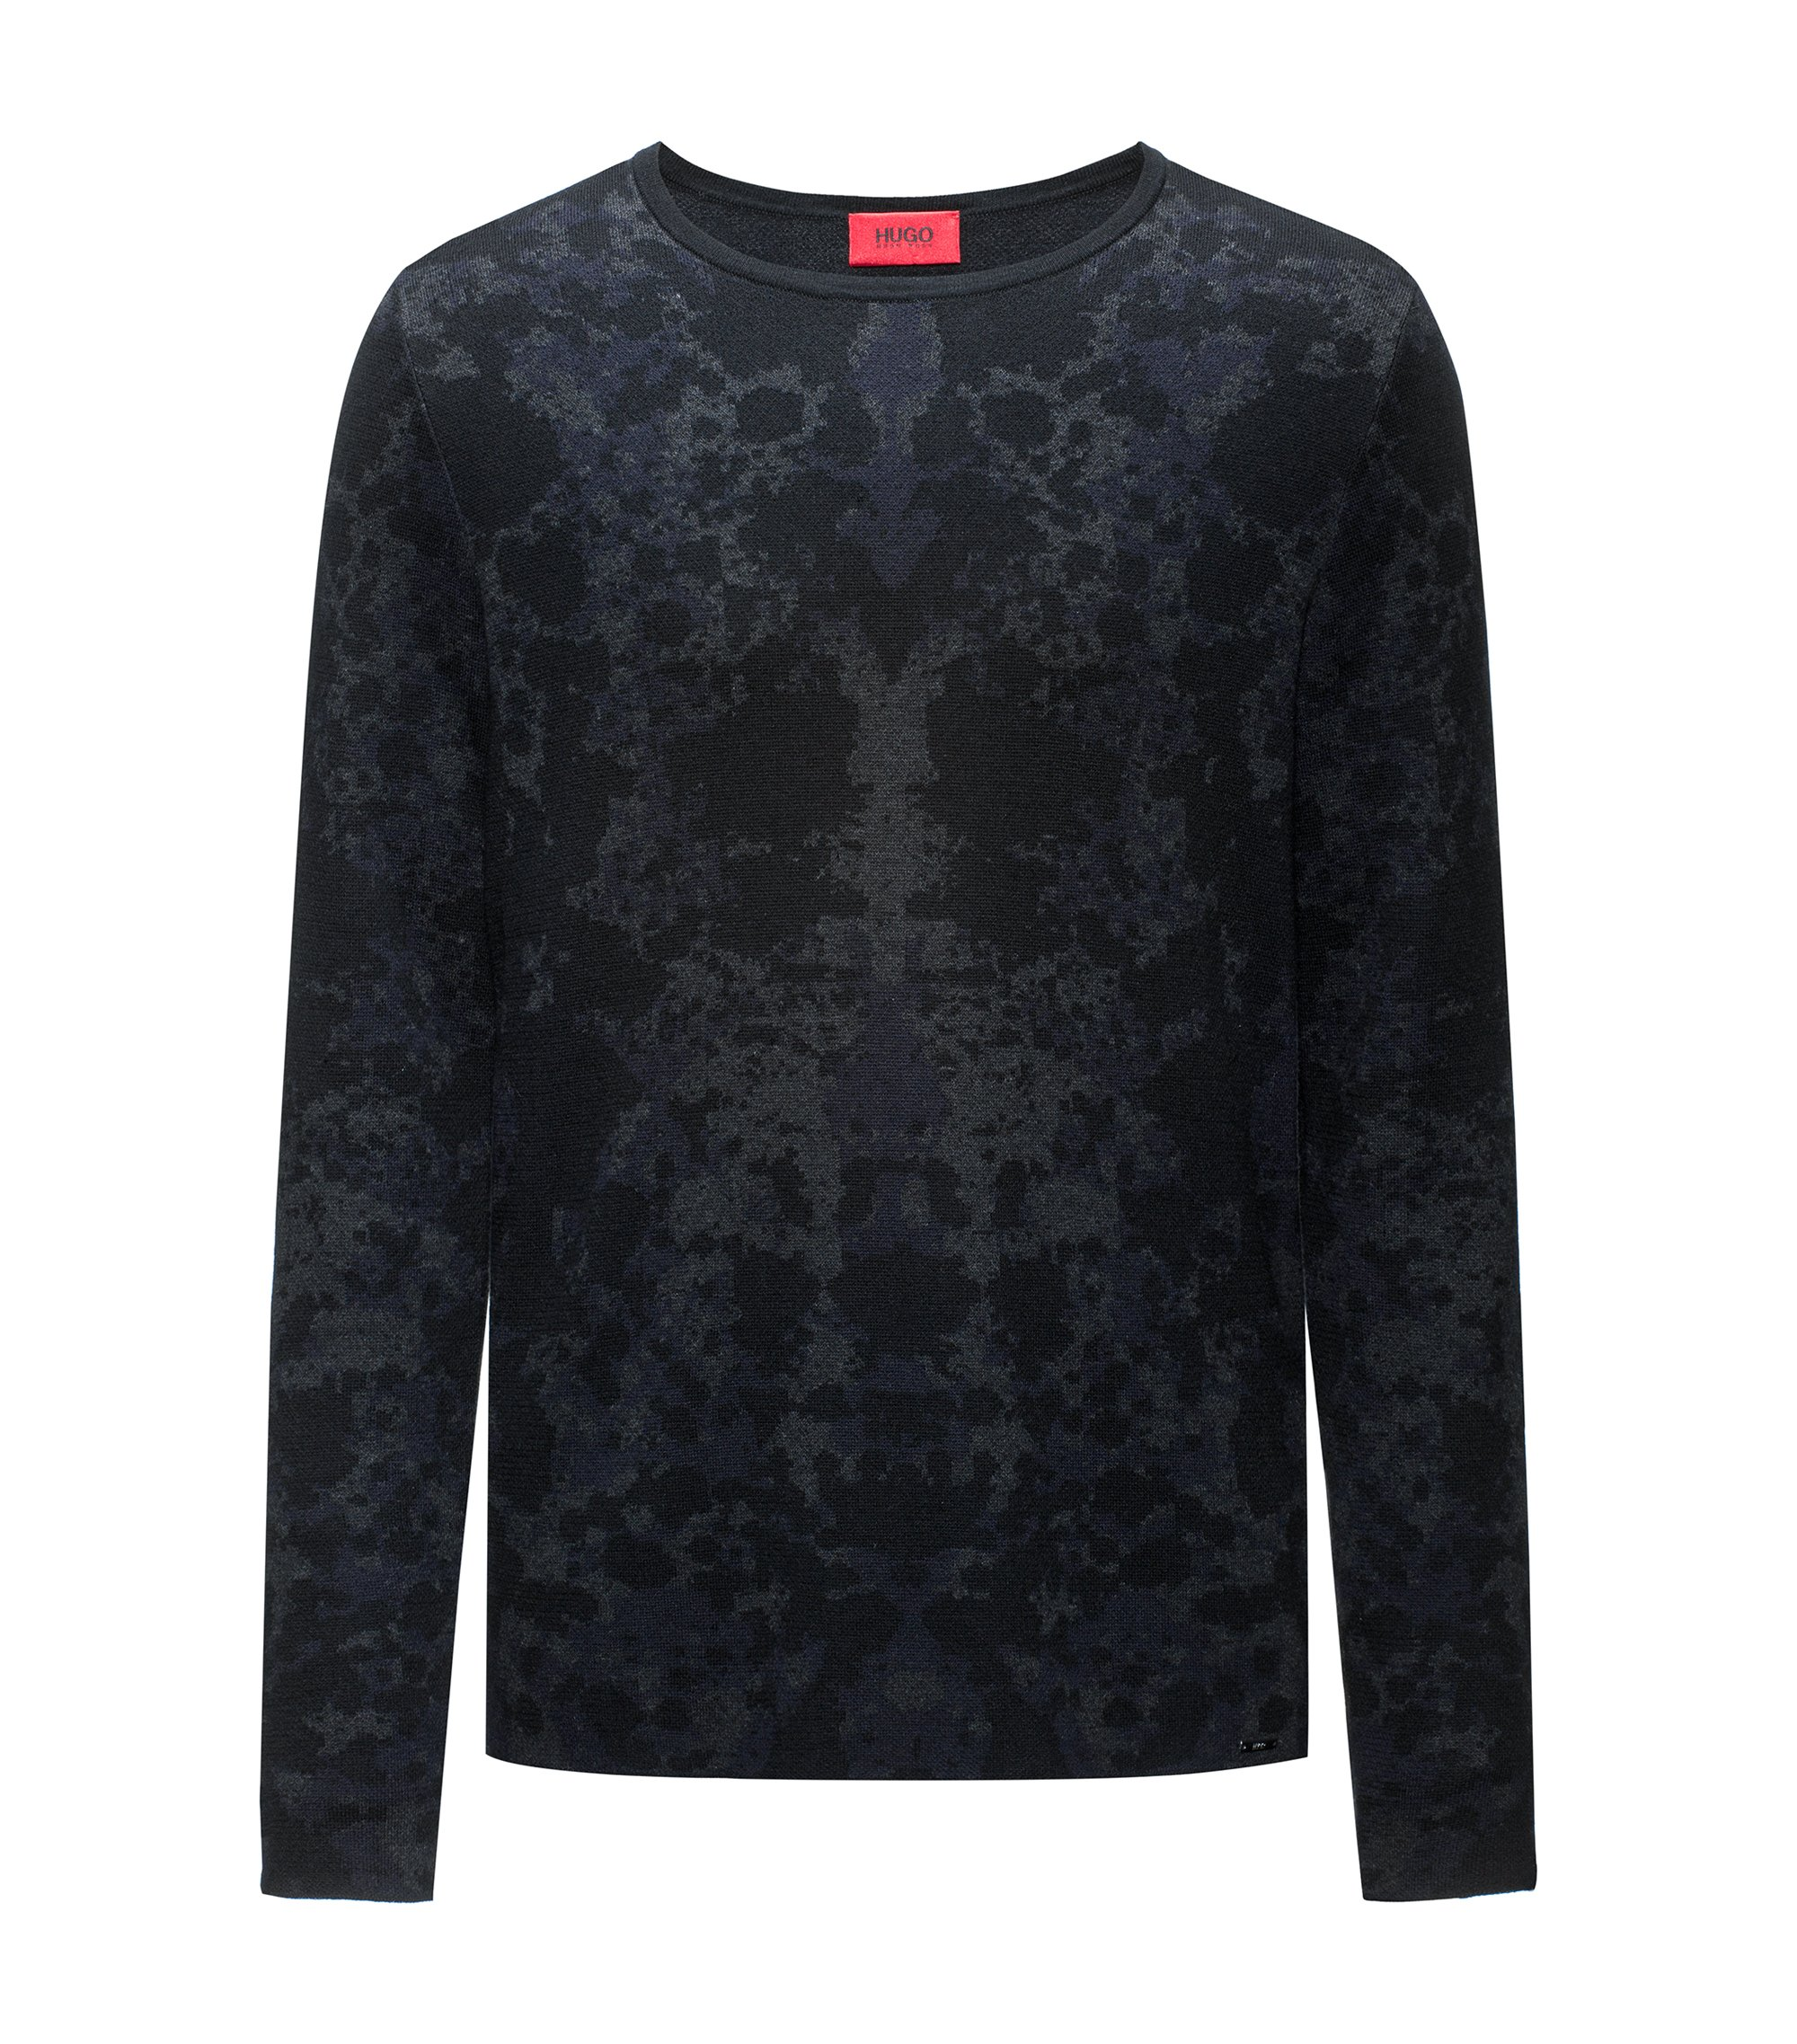 Crew-neck sweater in a jacquard cotton blend, Dark Grey